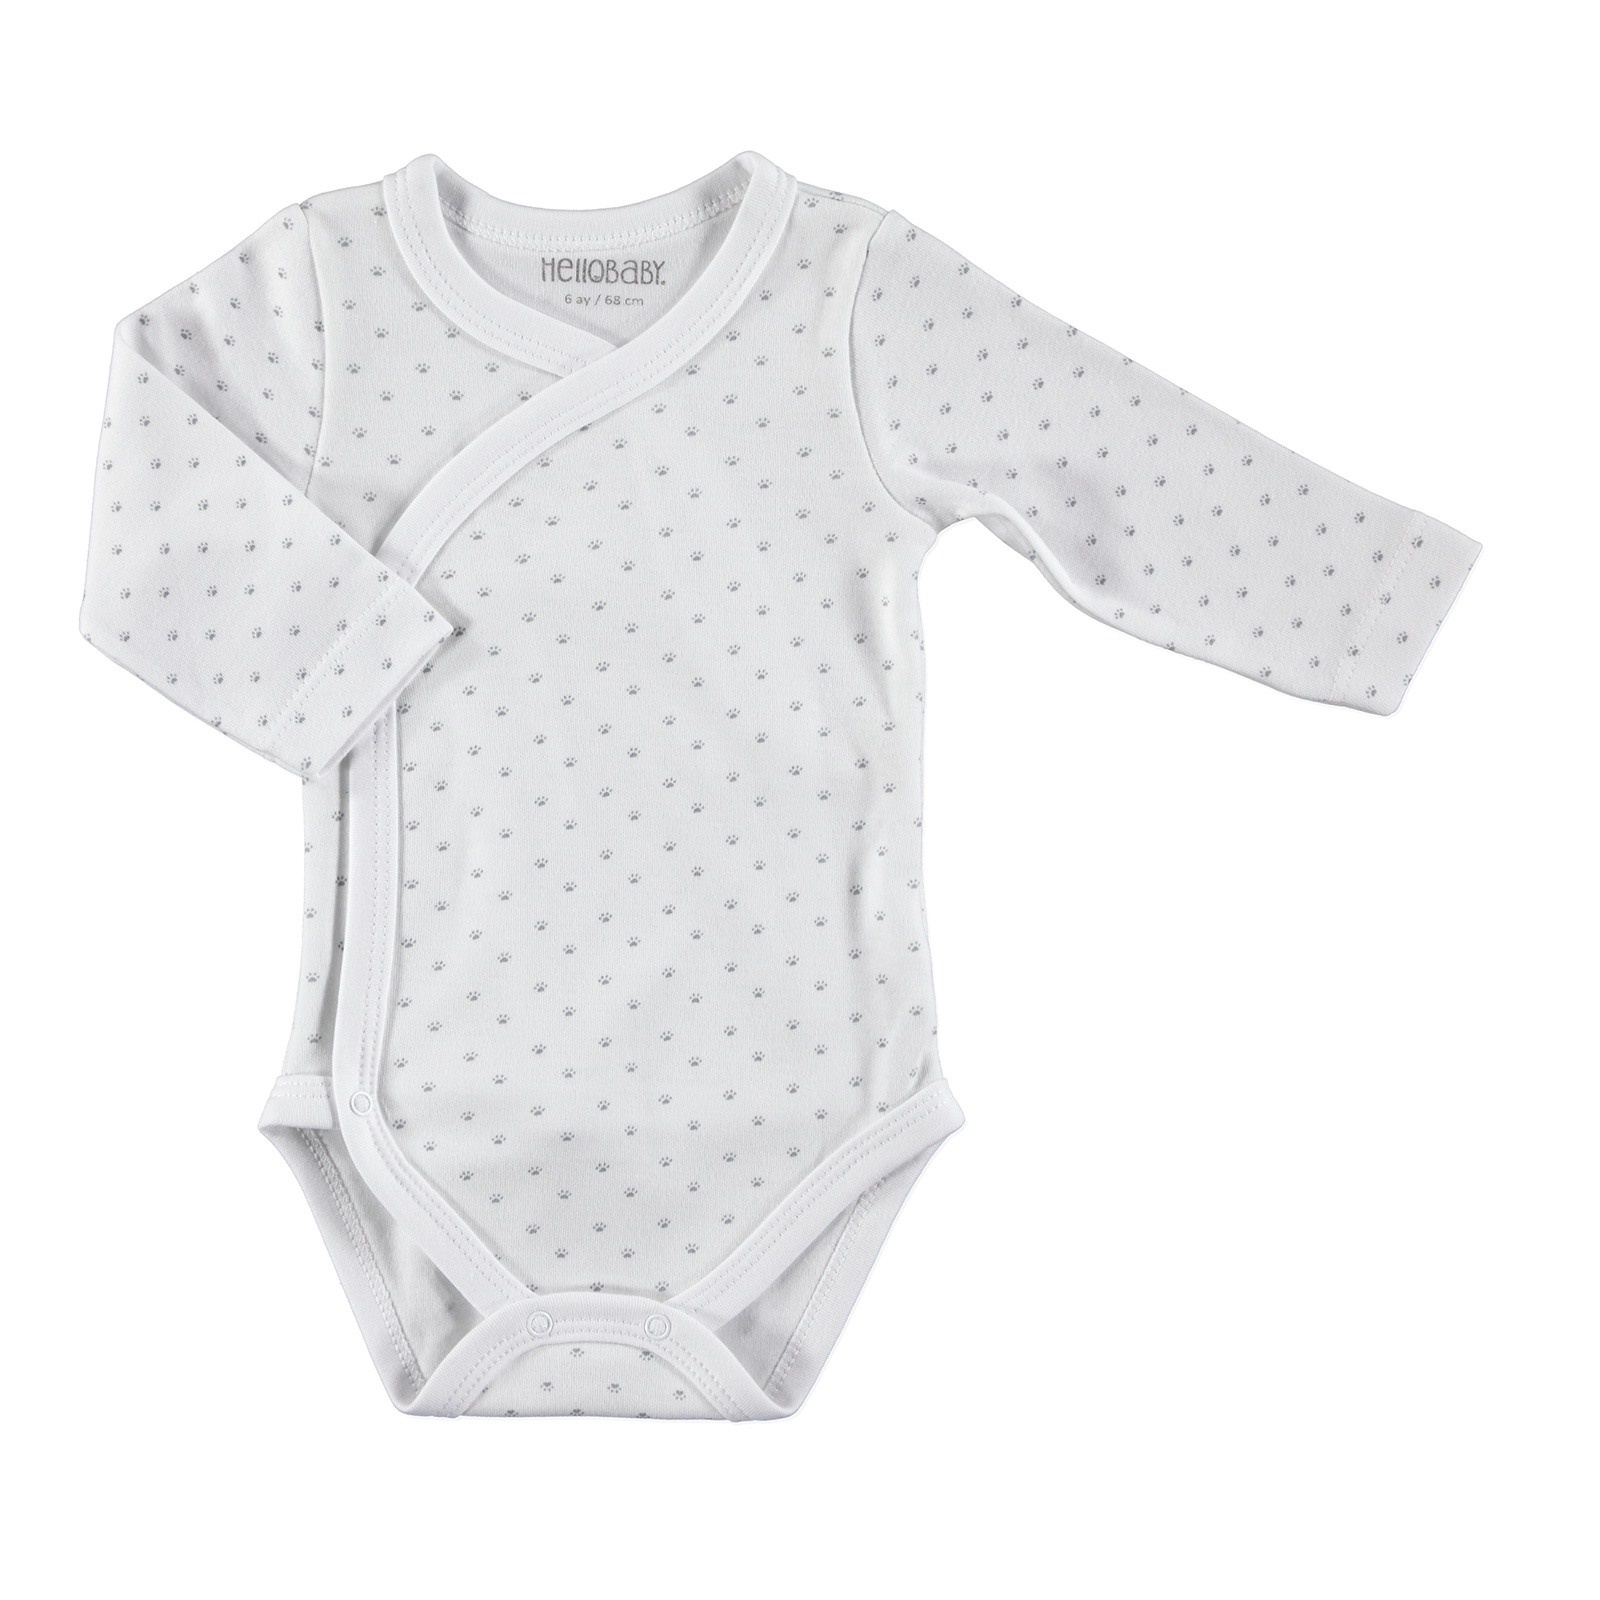 Ebebek HelloBaby Little Cute Paws Baby Long Sleeve Bodysuits